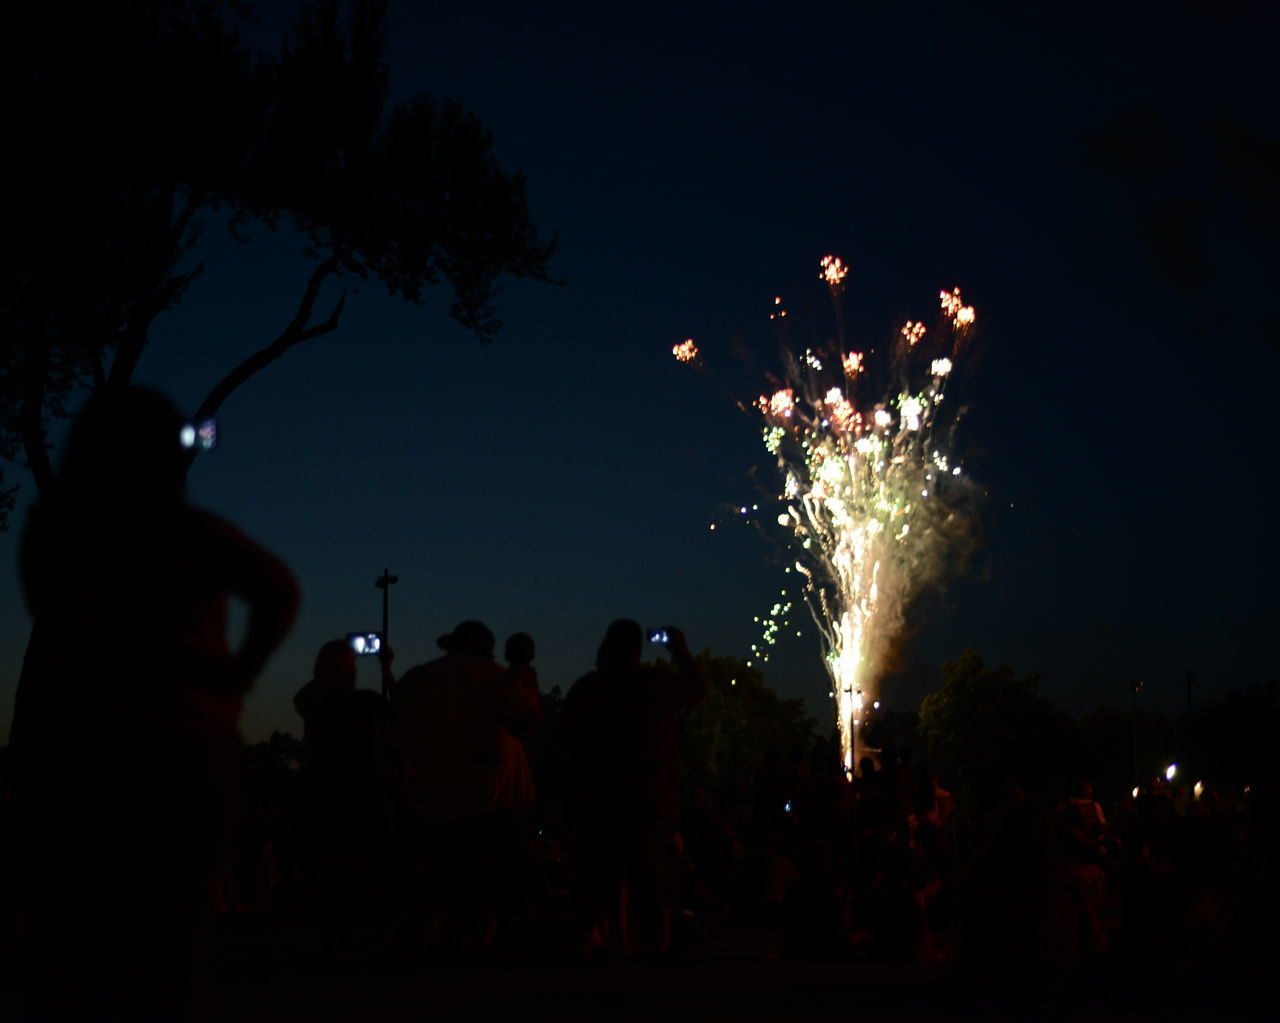 Silhouette People Photographing Fireworks Against Sky At Night